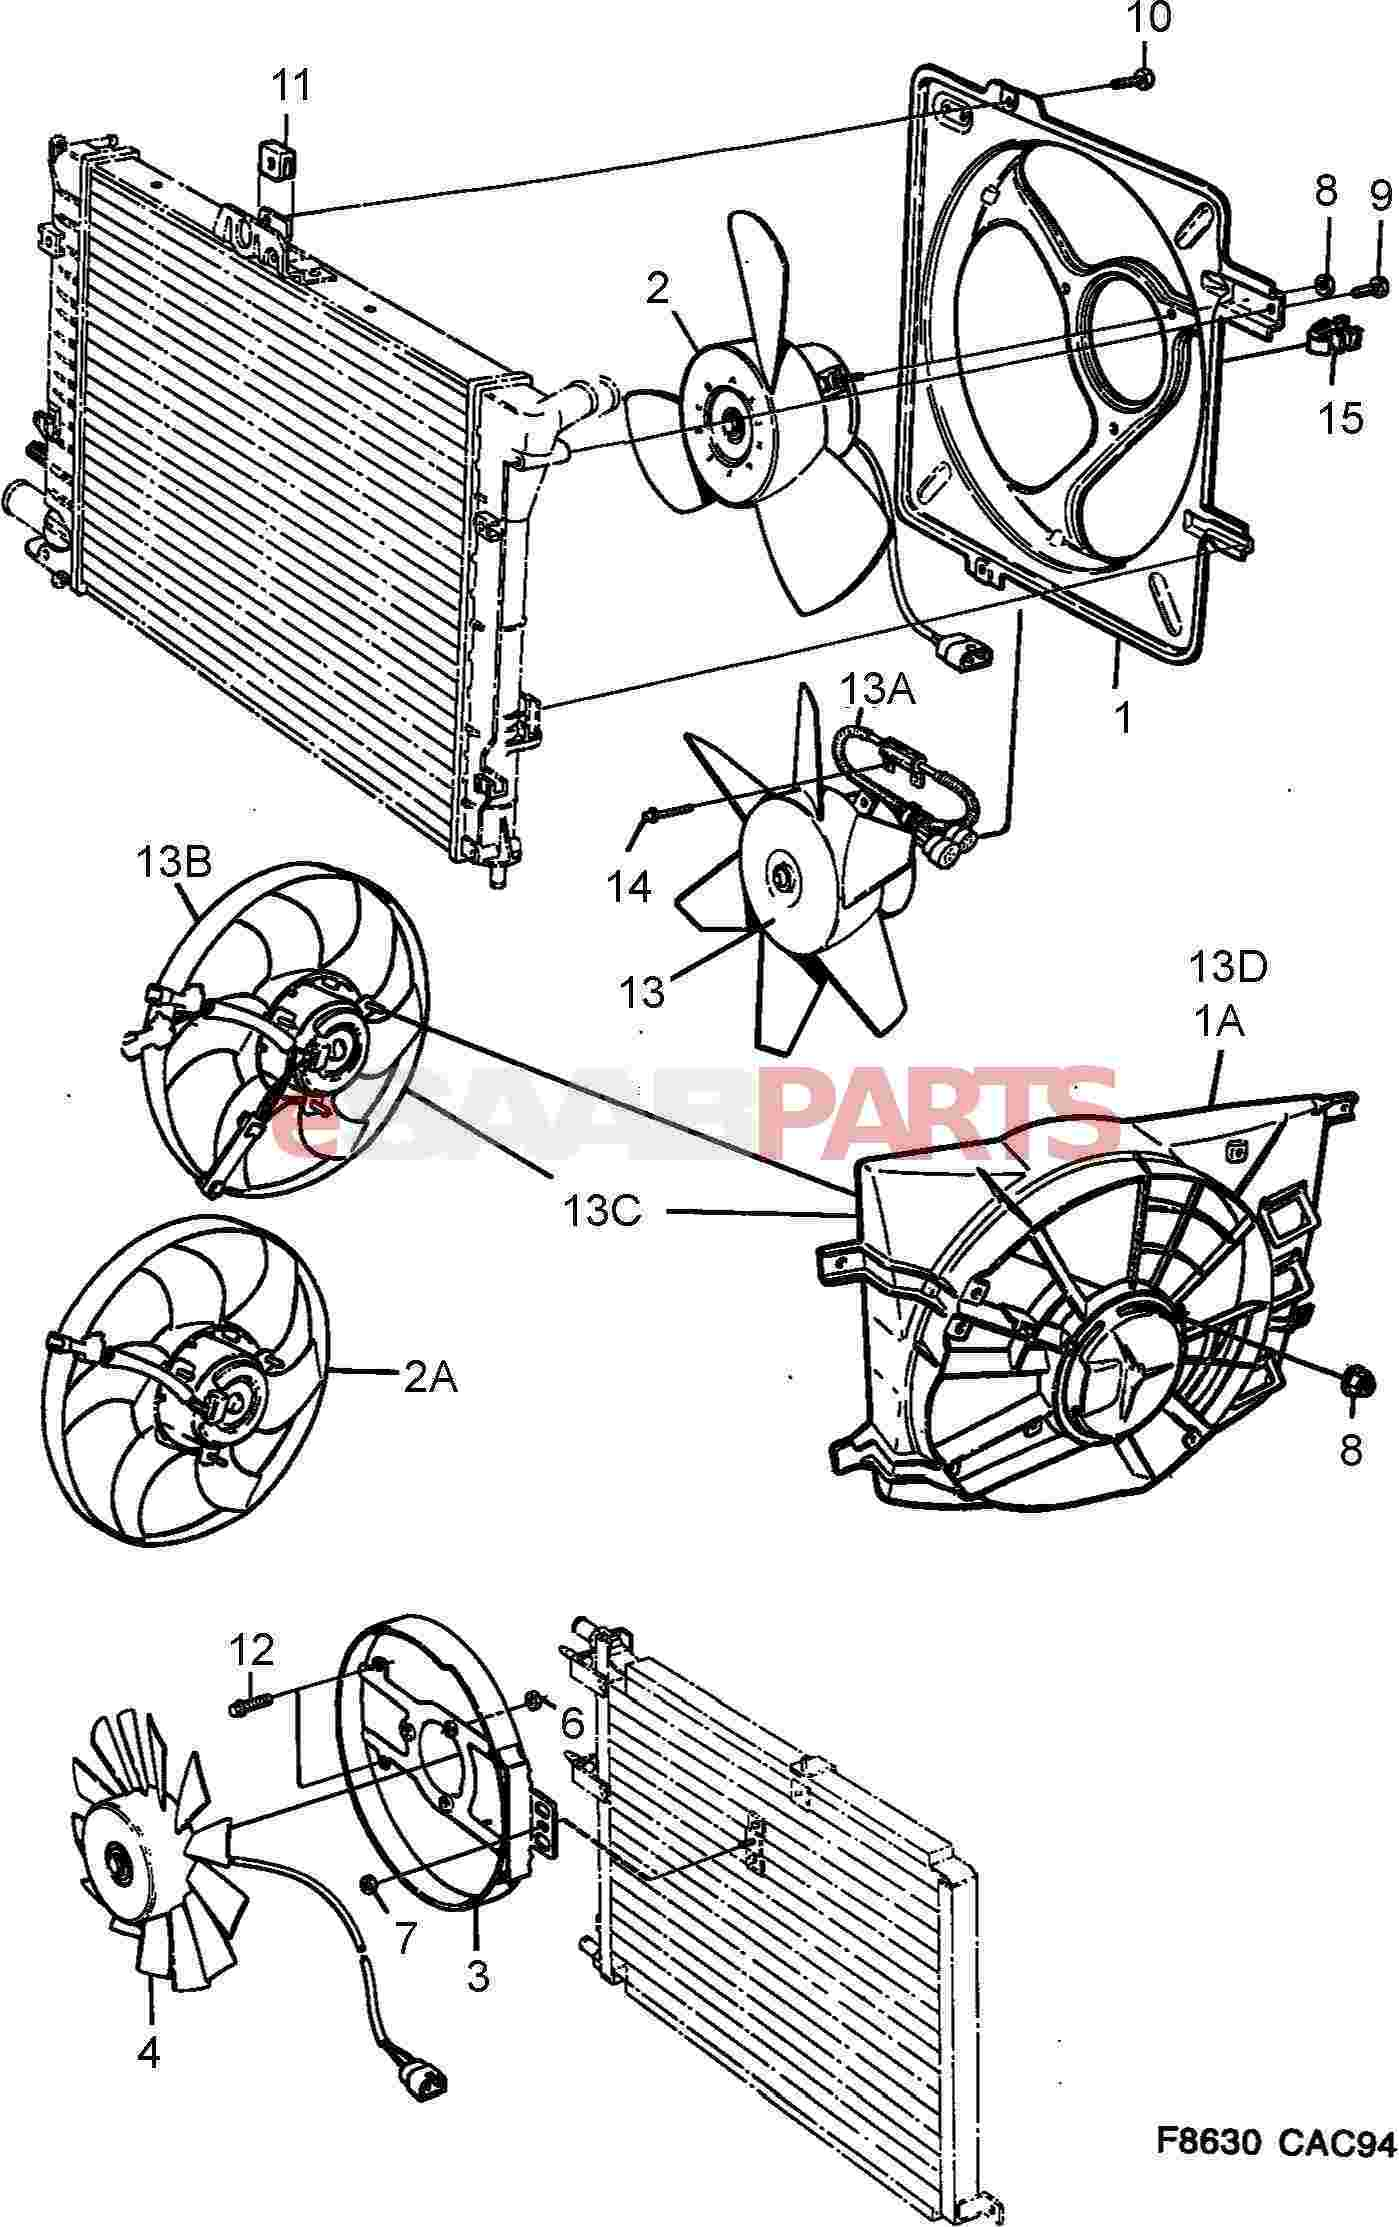 ant parts diagram mercedes benz w203 wiring diagrams toyota 4runner antenna replacement imageresizertool com